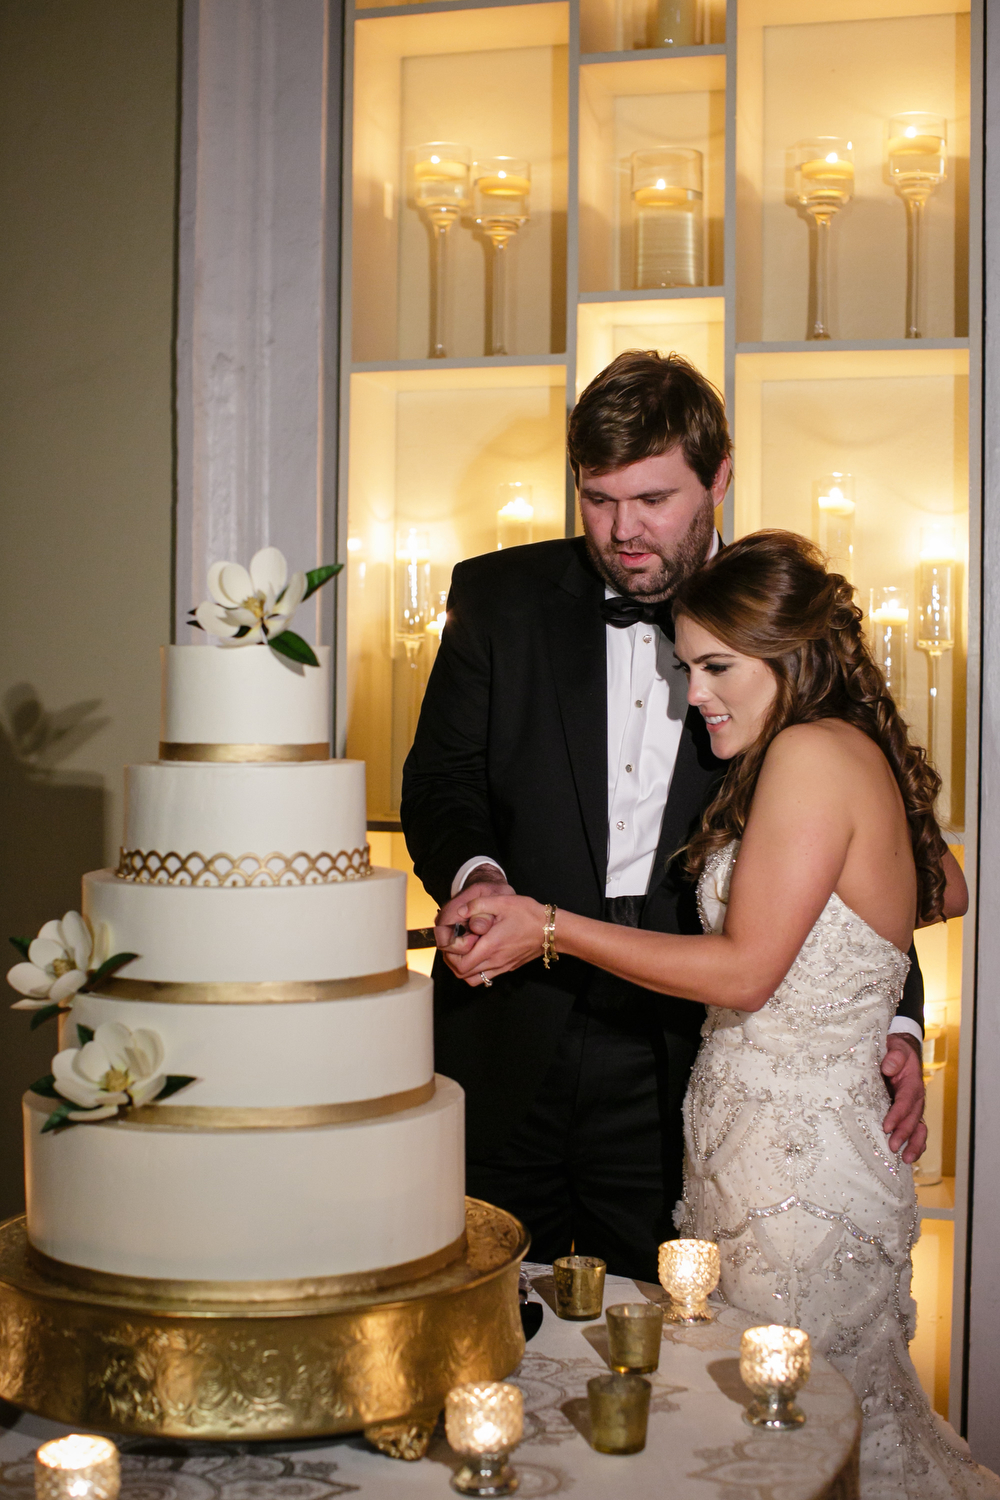 bride and groom cutting a large white and gold detailed wedding cake in front of a wall of candle light